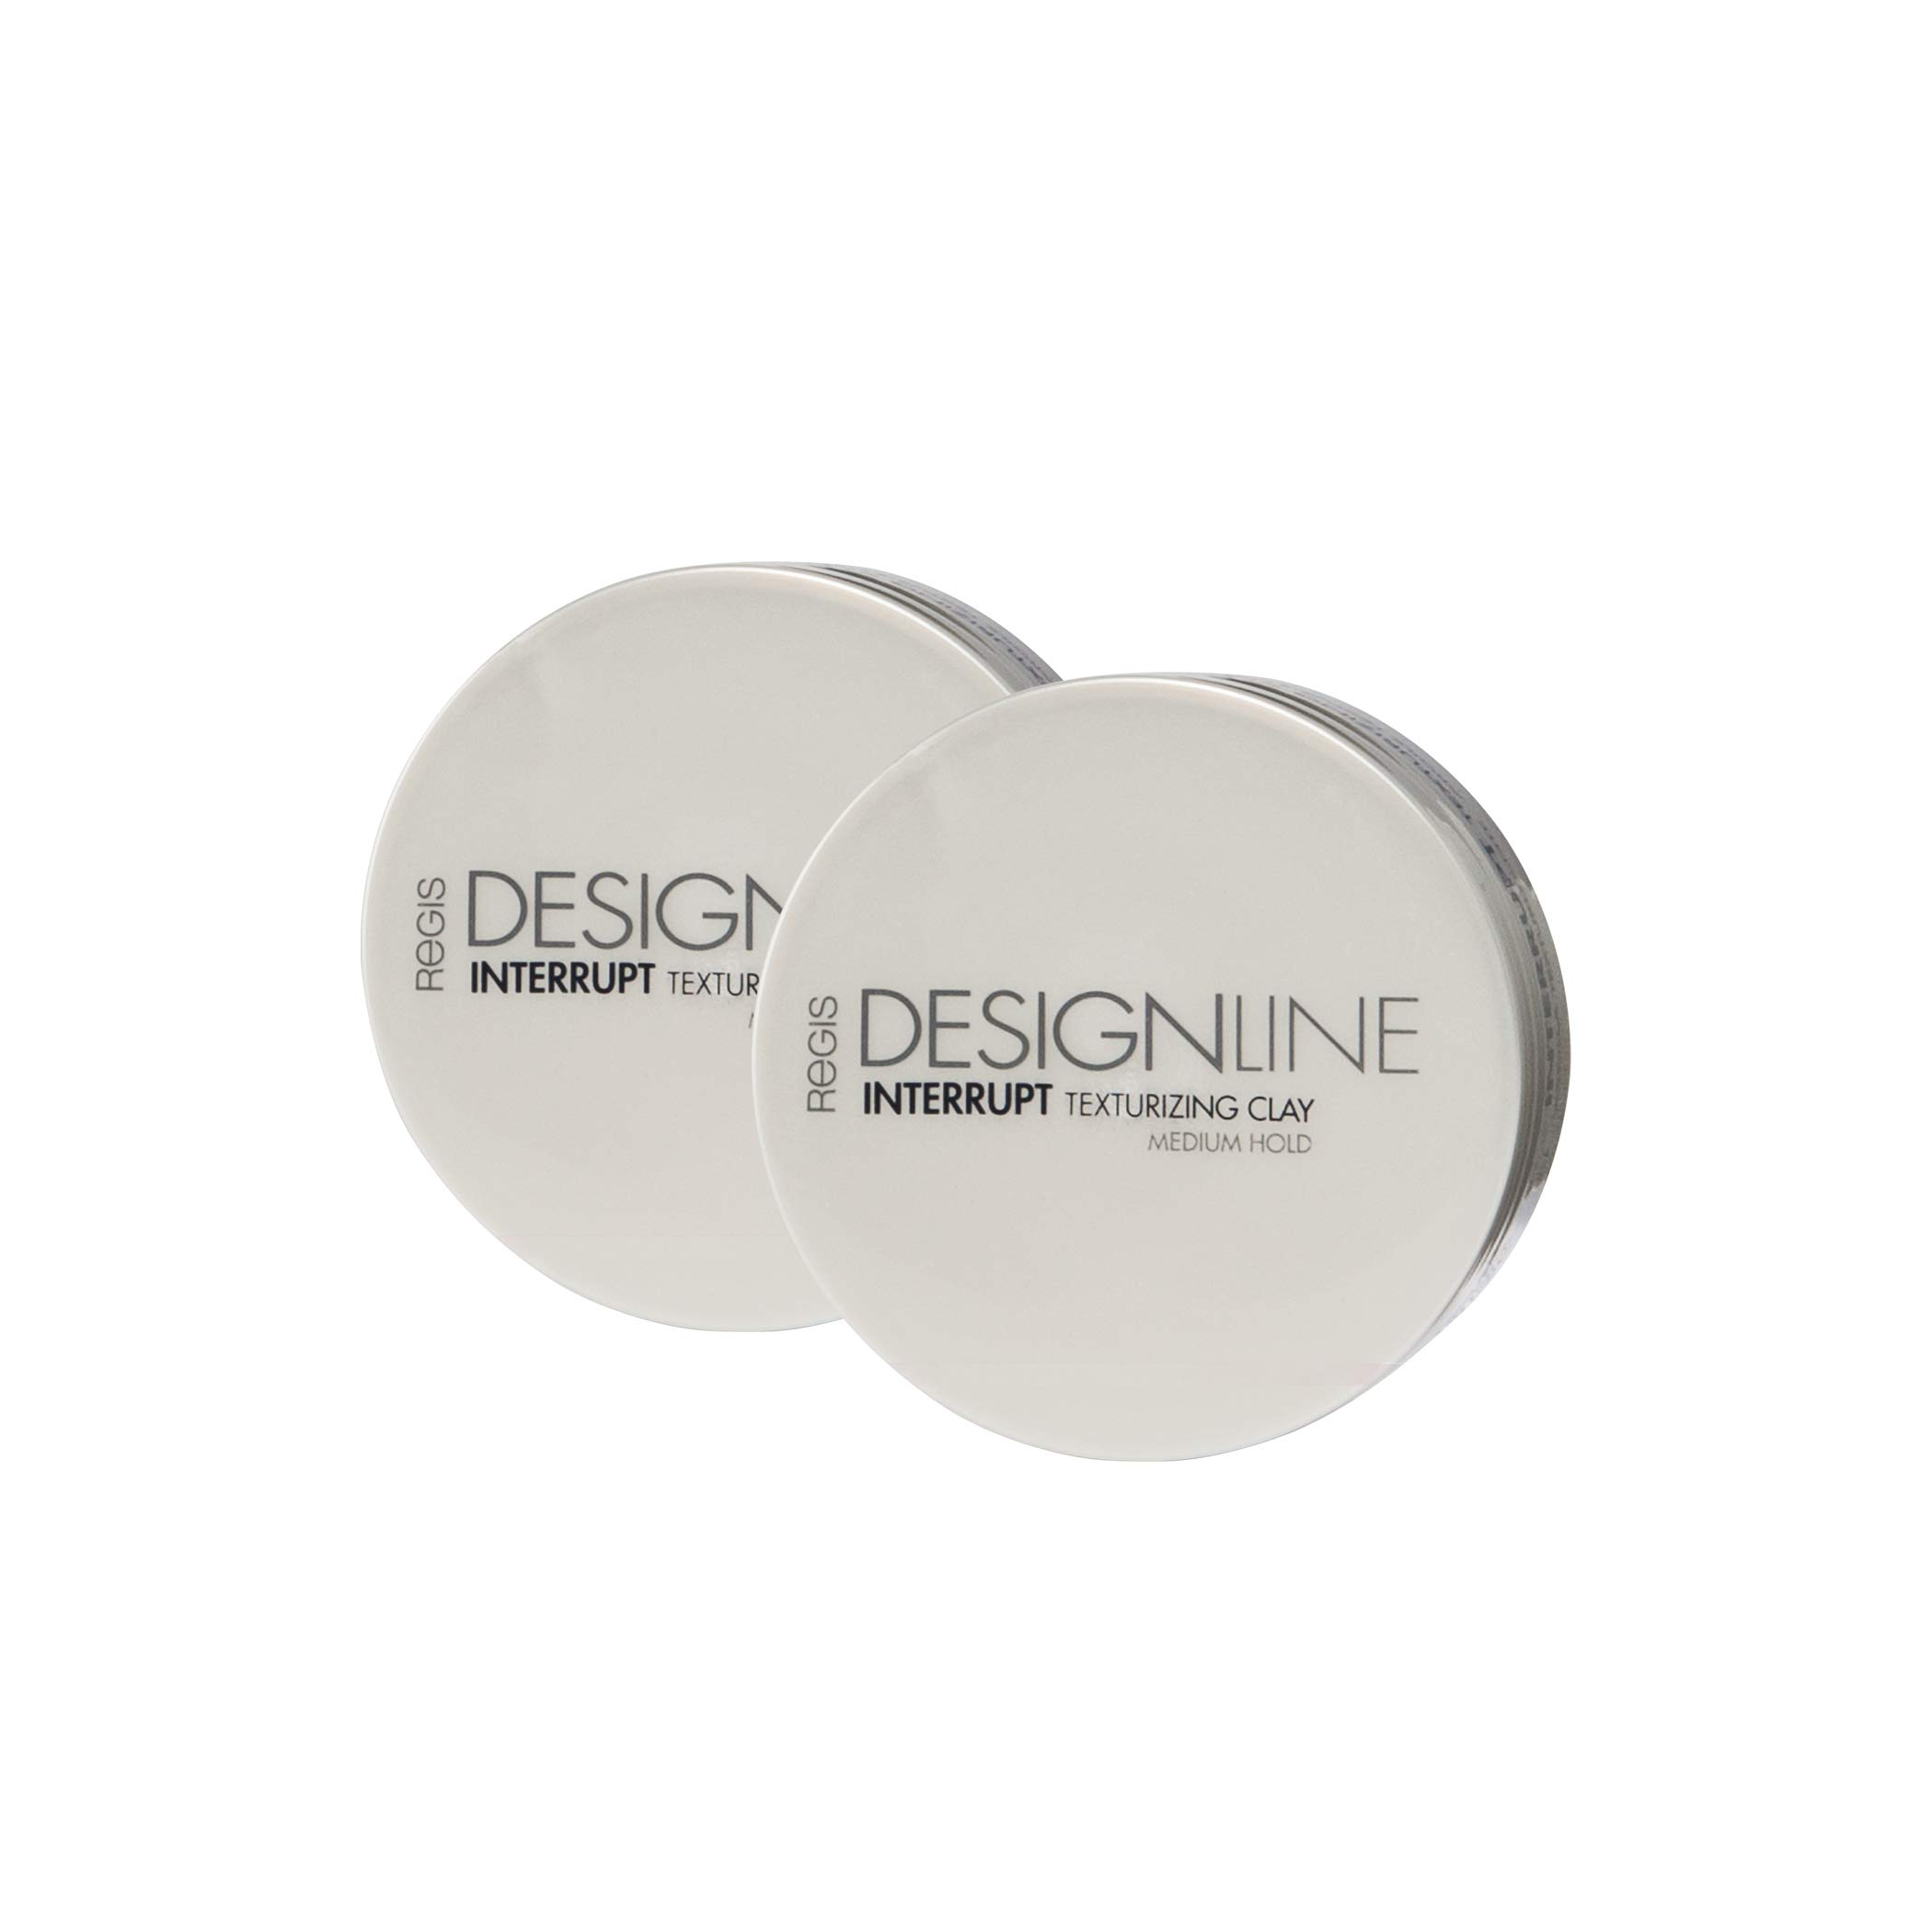 Interrupt Texturizing Clay, 2 oz - Regis DESIGNLINE - Creates Texture, Definition, and Separation with a Medium-Hold to Add Volume for All Hair Styles (2 oz (2 Pack)) by DESIGNLINE